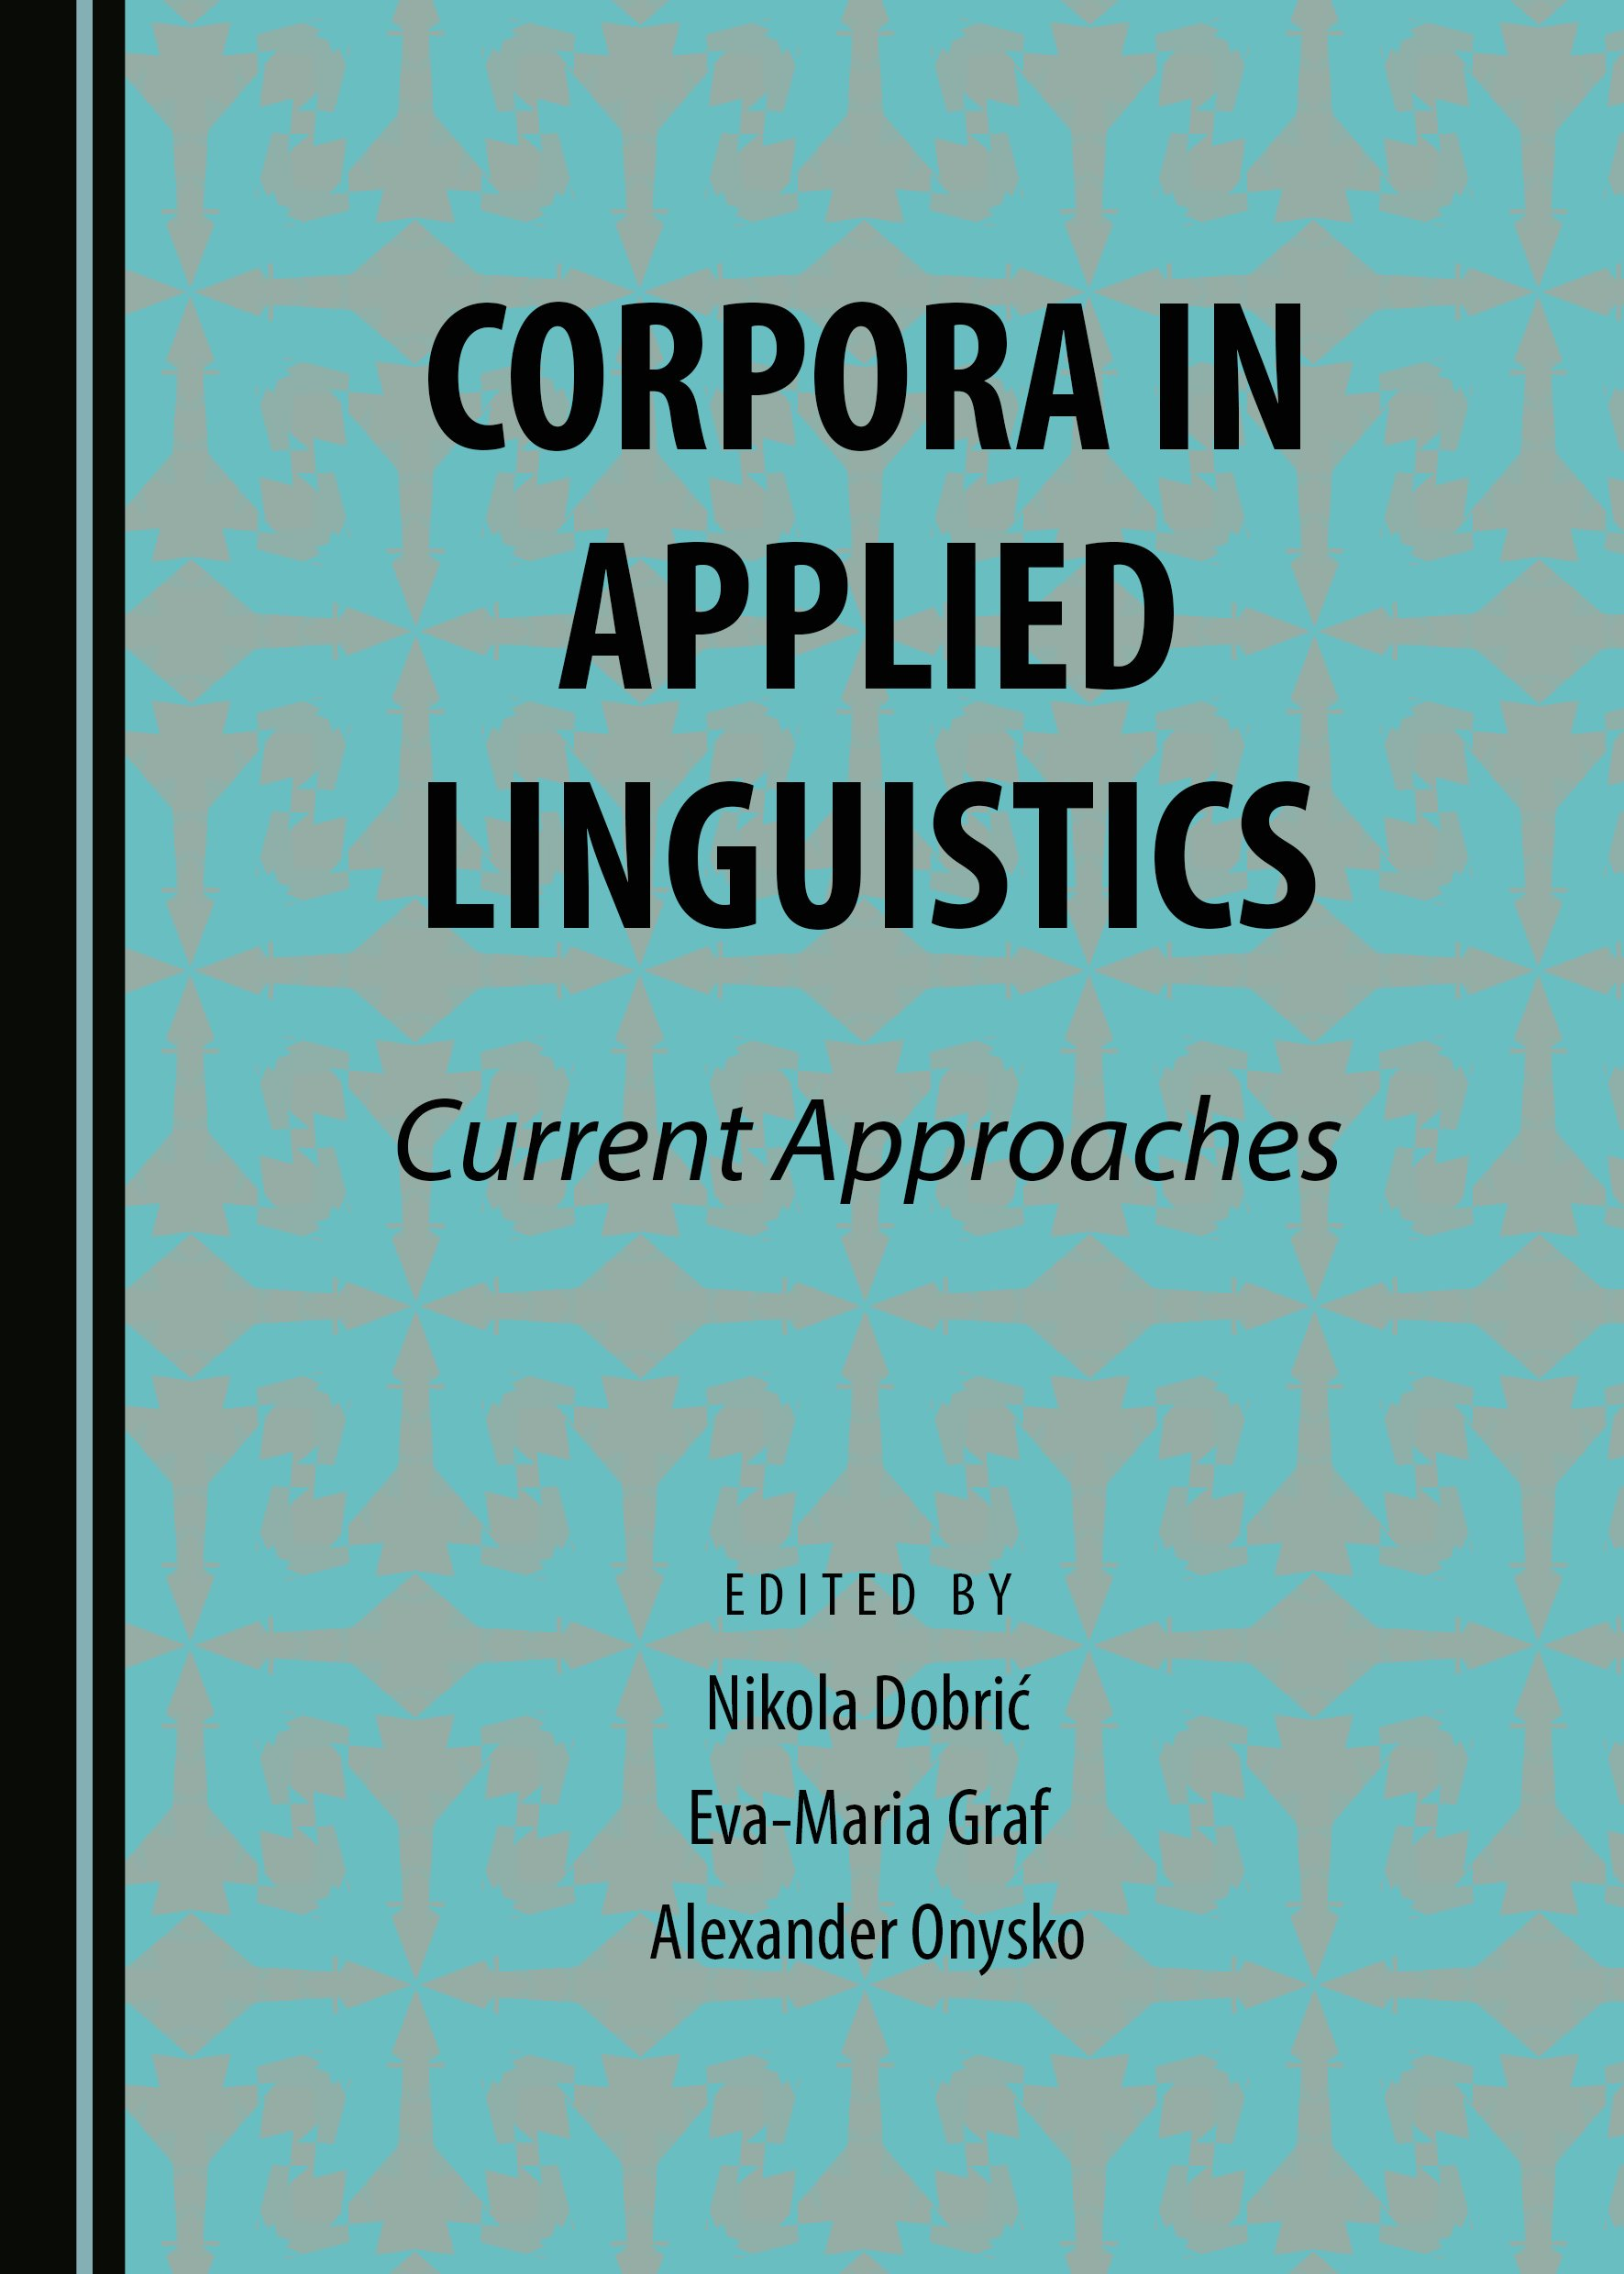 Corpora in Applied Linguistics: Current Approaches